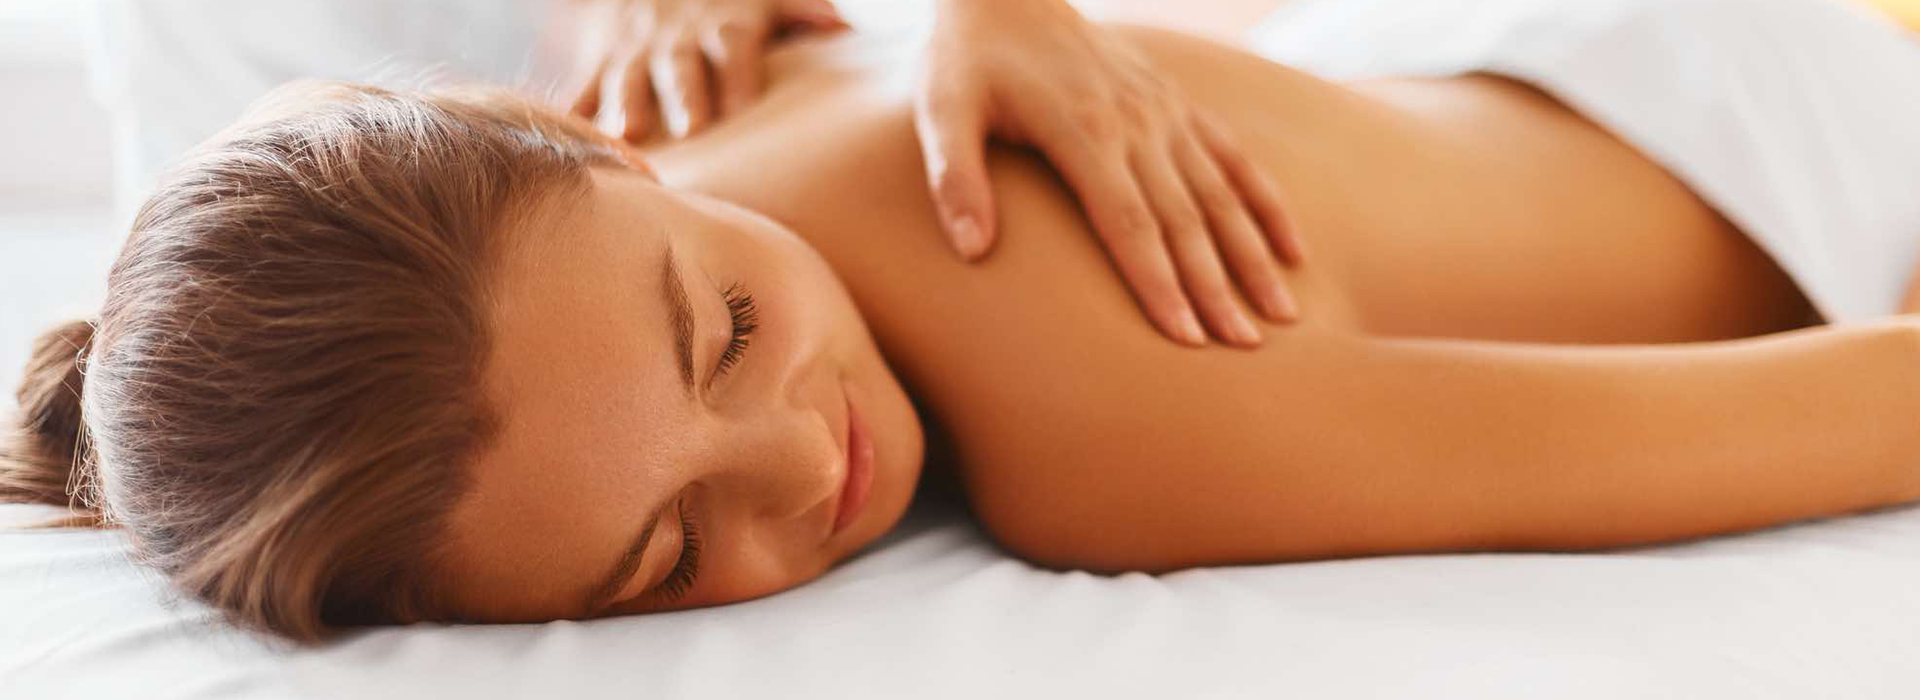 Massage at Solea Beauty